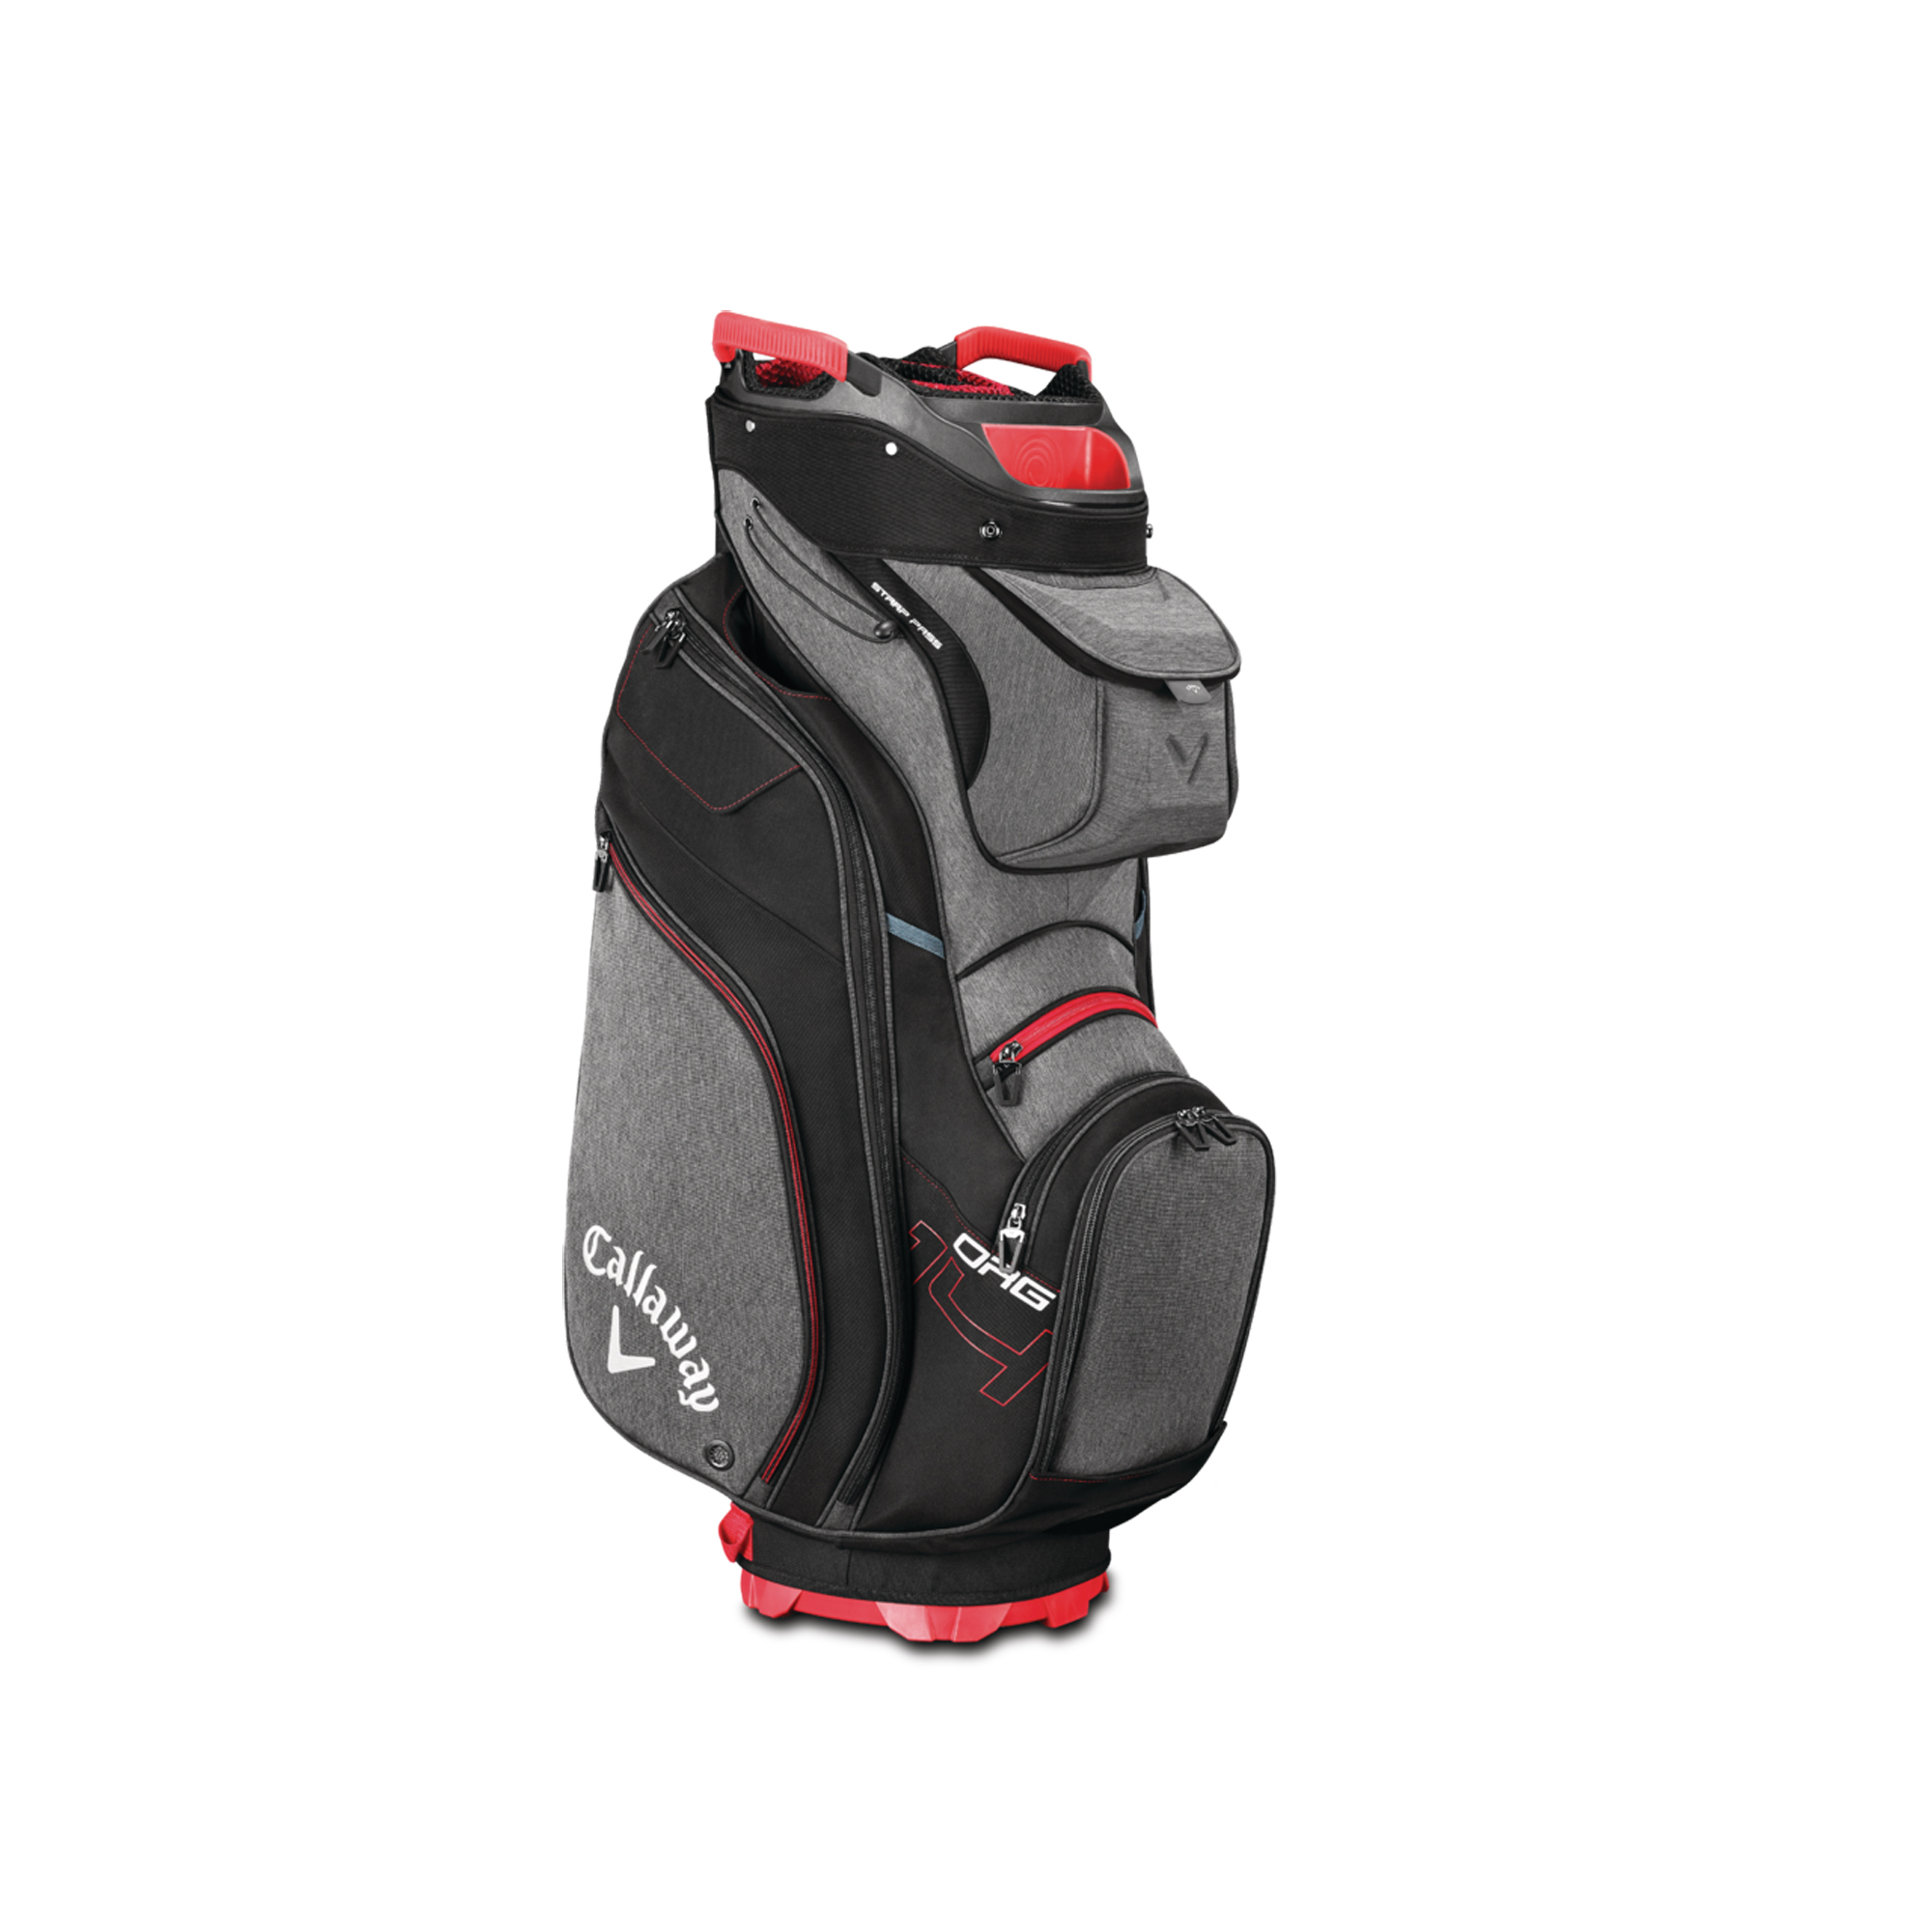 Callaway ORG 14 Cart Golf Bag Titanium/Black/Red